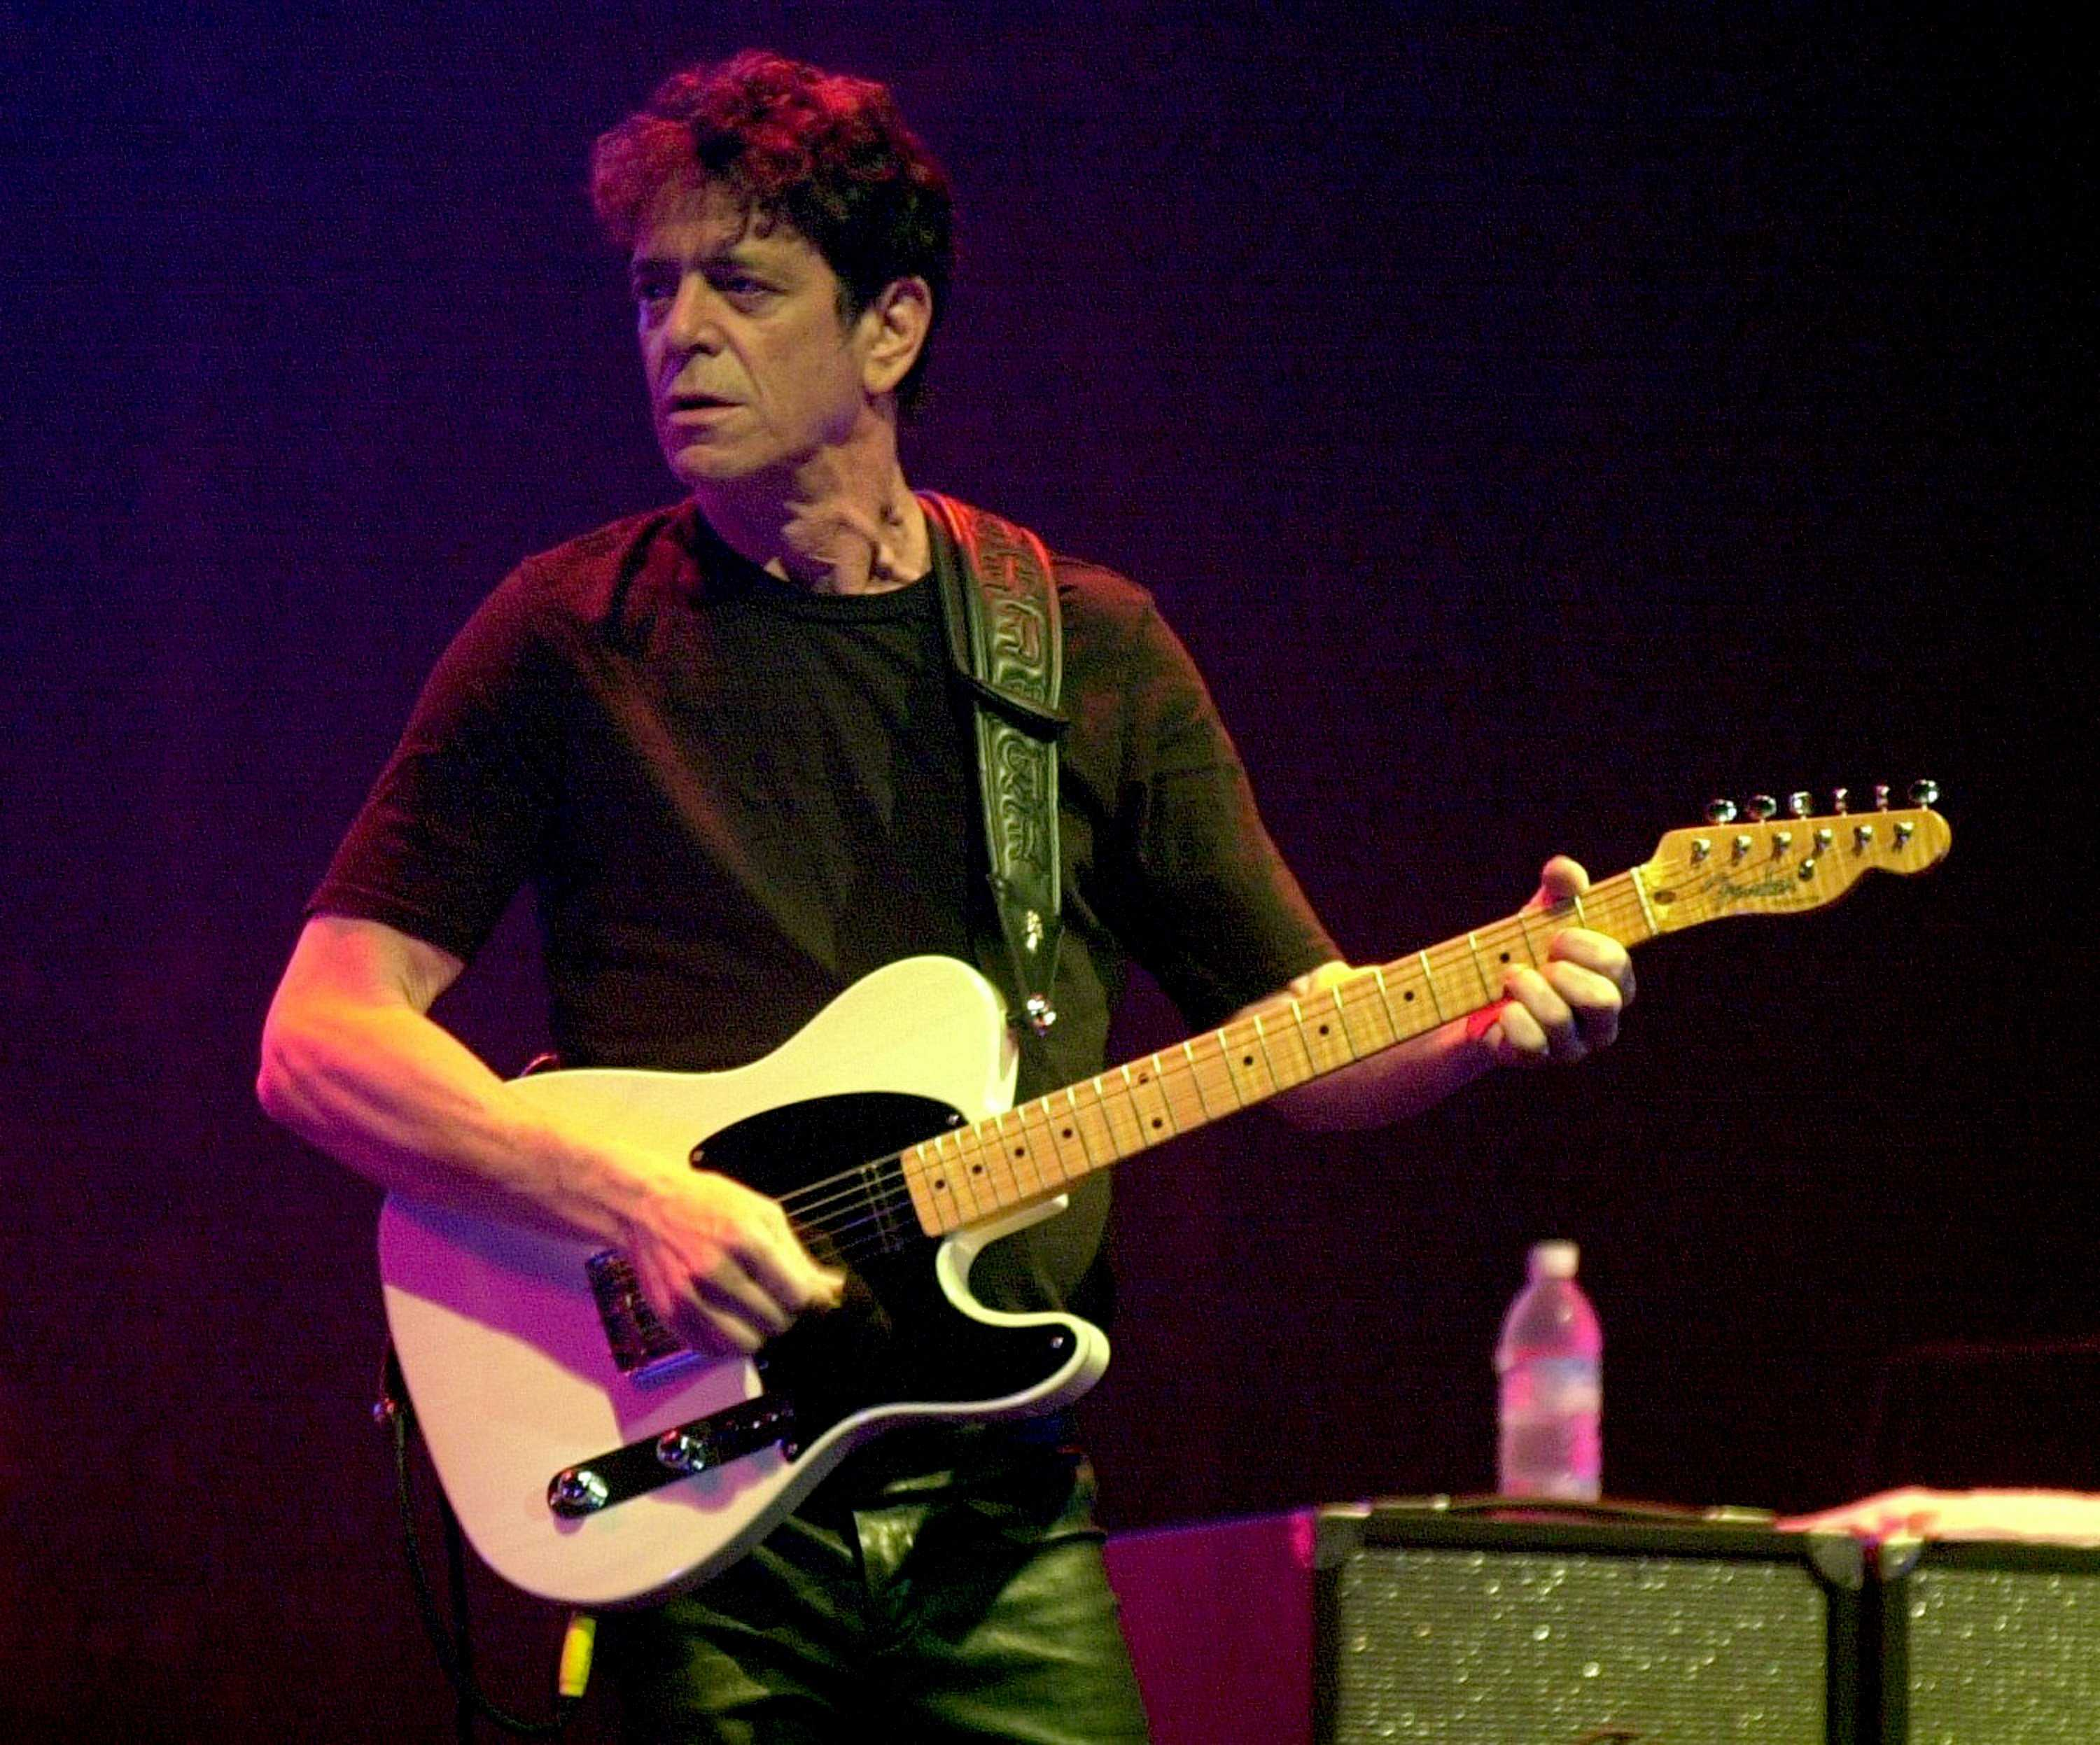 """Lou Reed is well-known for his 1973 hit """"Walk on the Wild Side.""""  He was an icon in the world of classic rock music."""